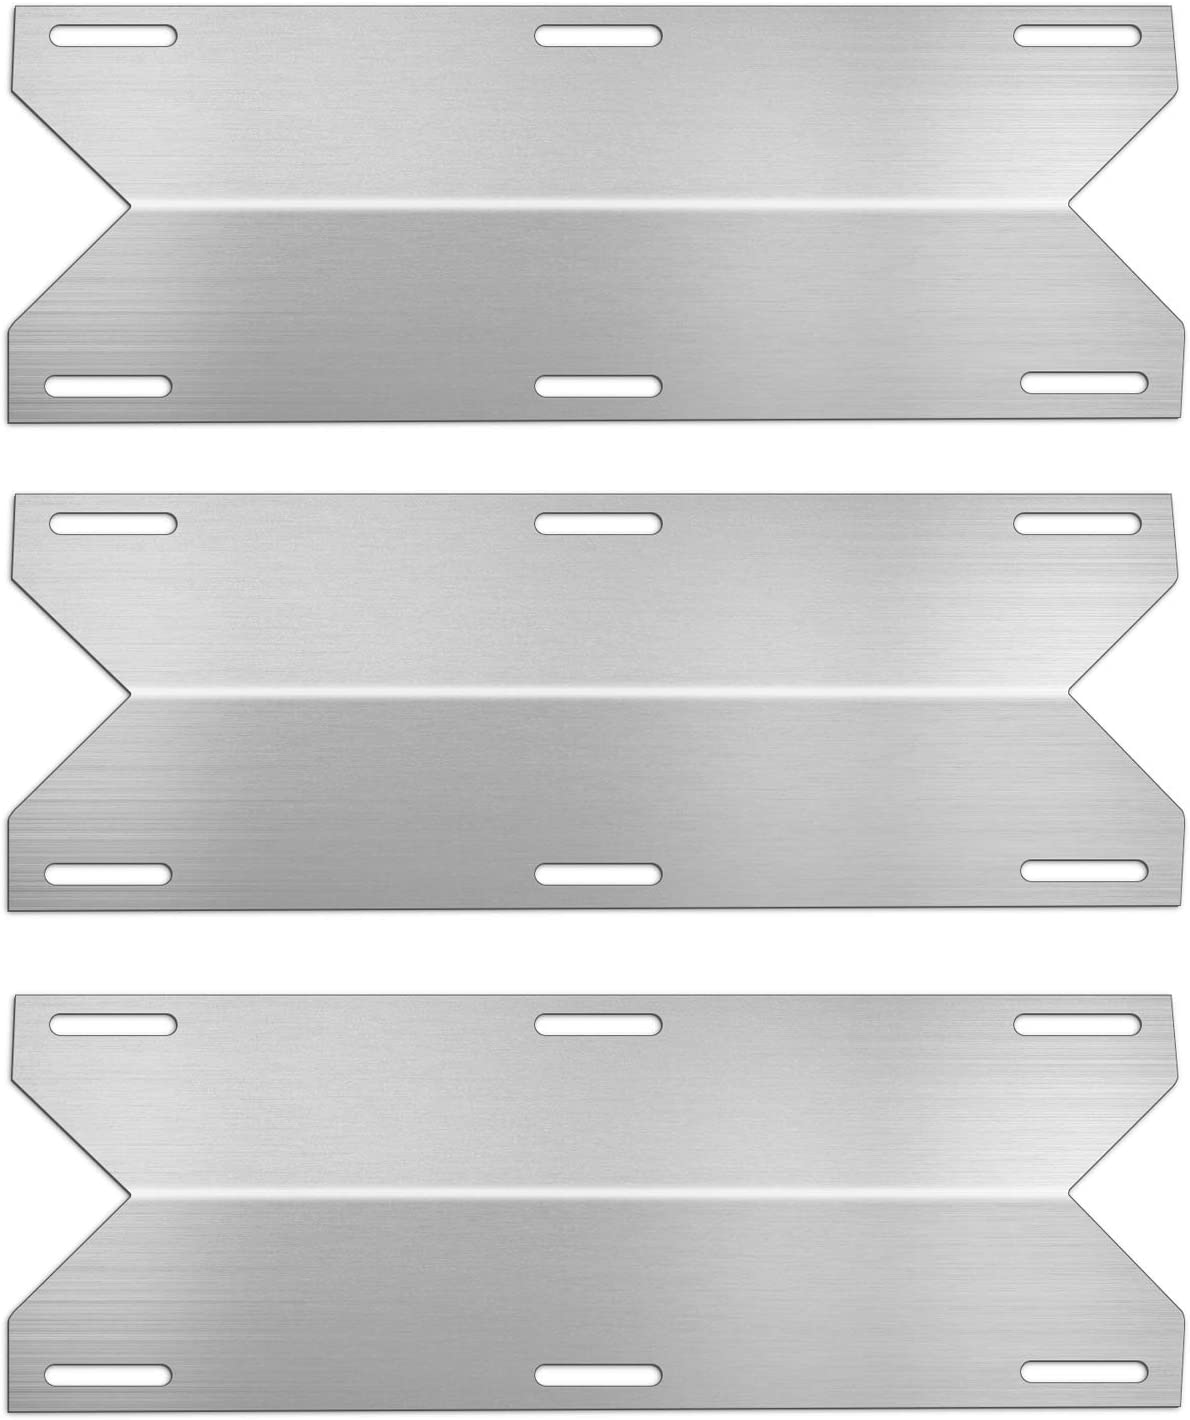 Folocy Stainless Steel Very popular Grill Heat Plates Tent Burner Shield Direct sale of manufacturer